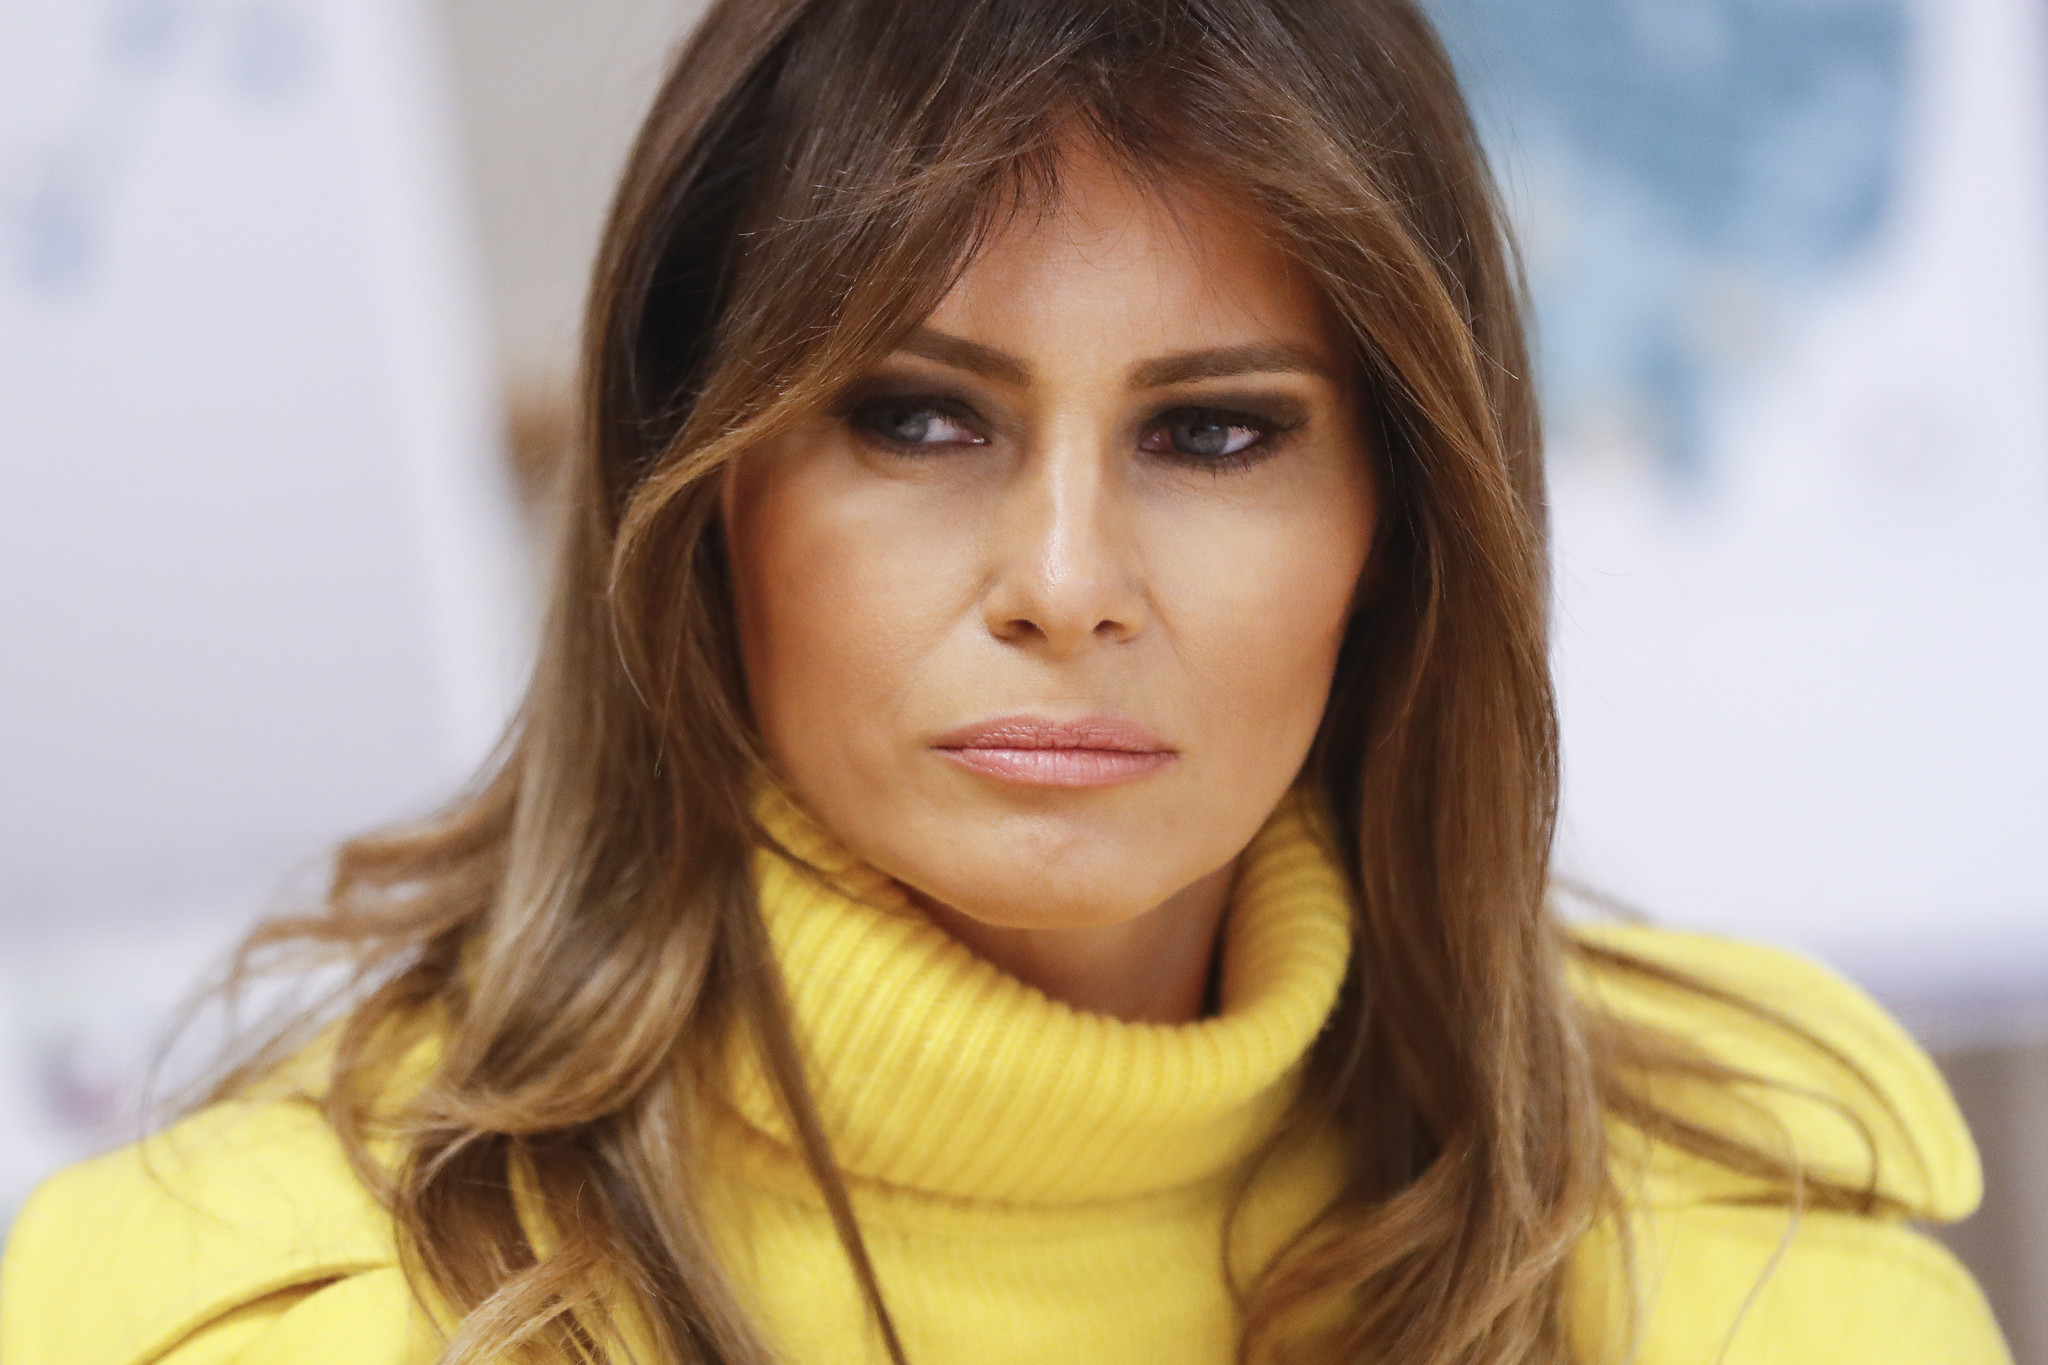 Melania Trump is not a delicate flower or a victim ...